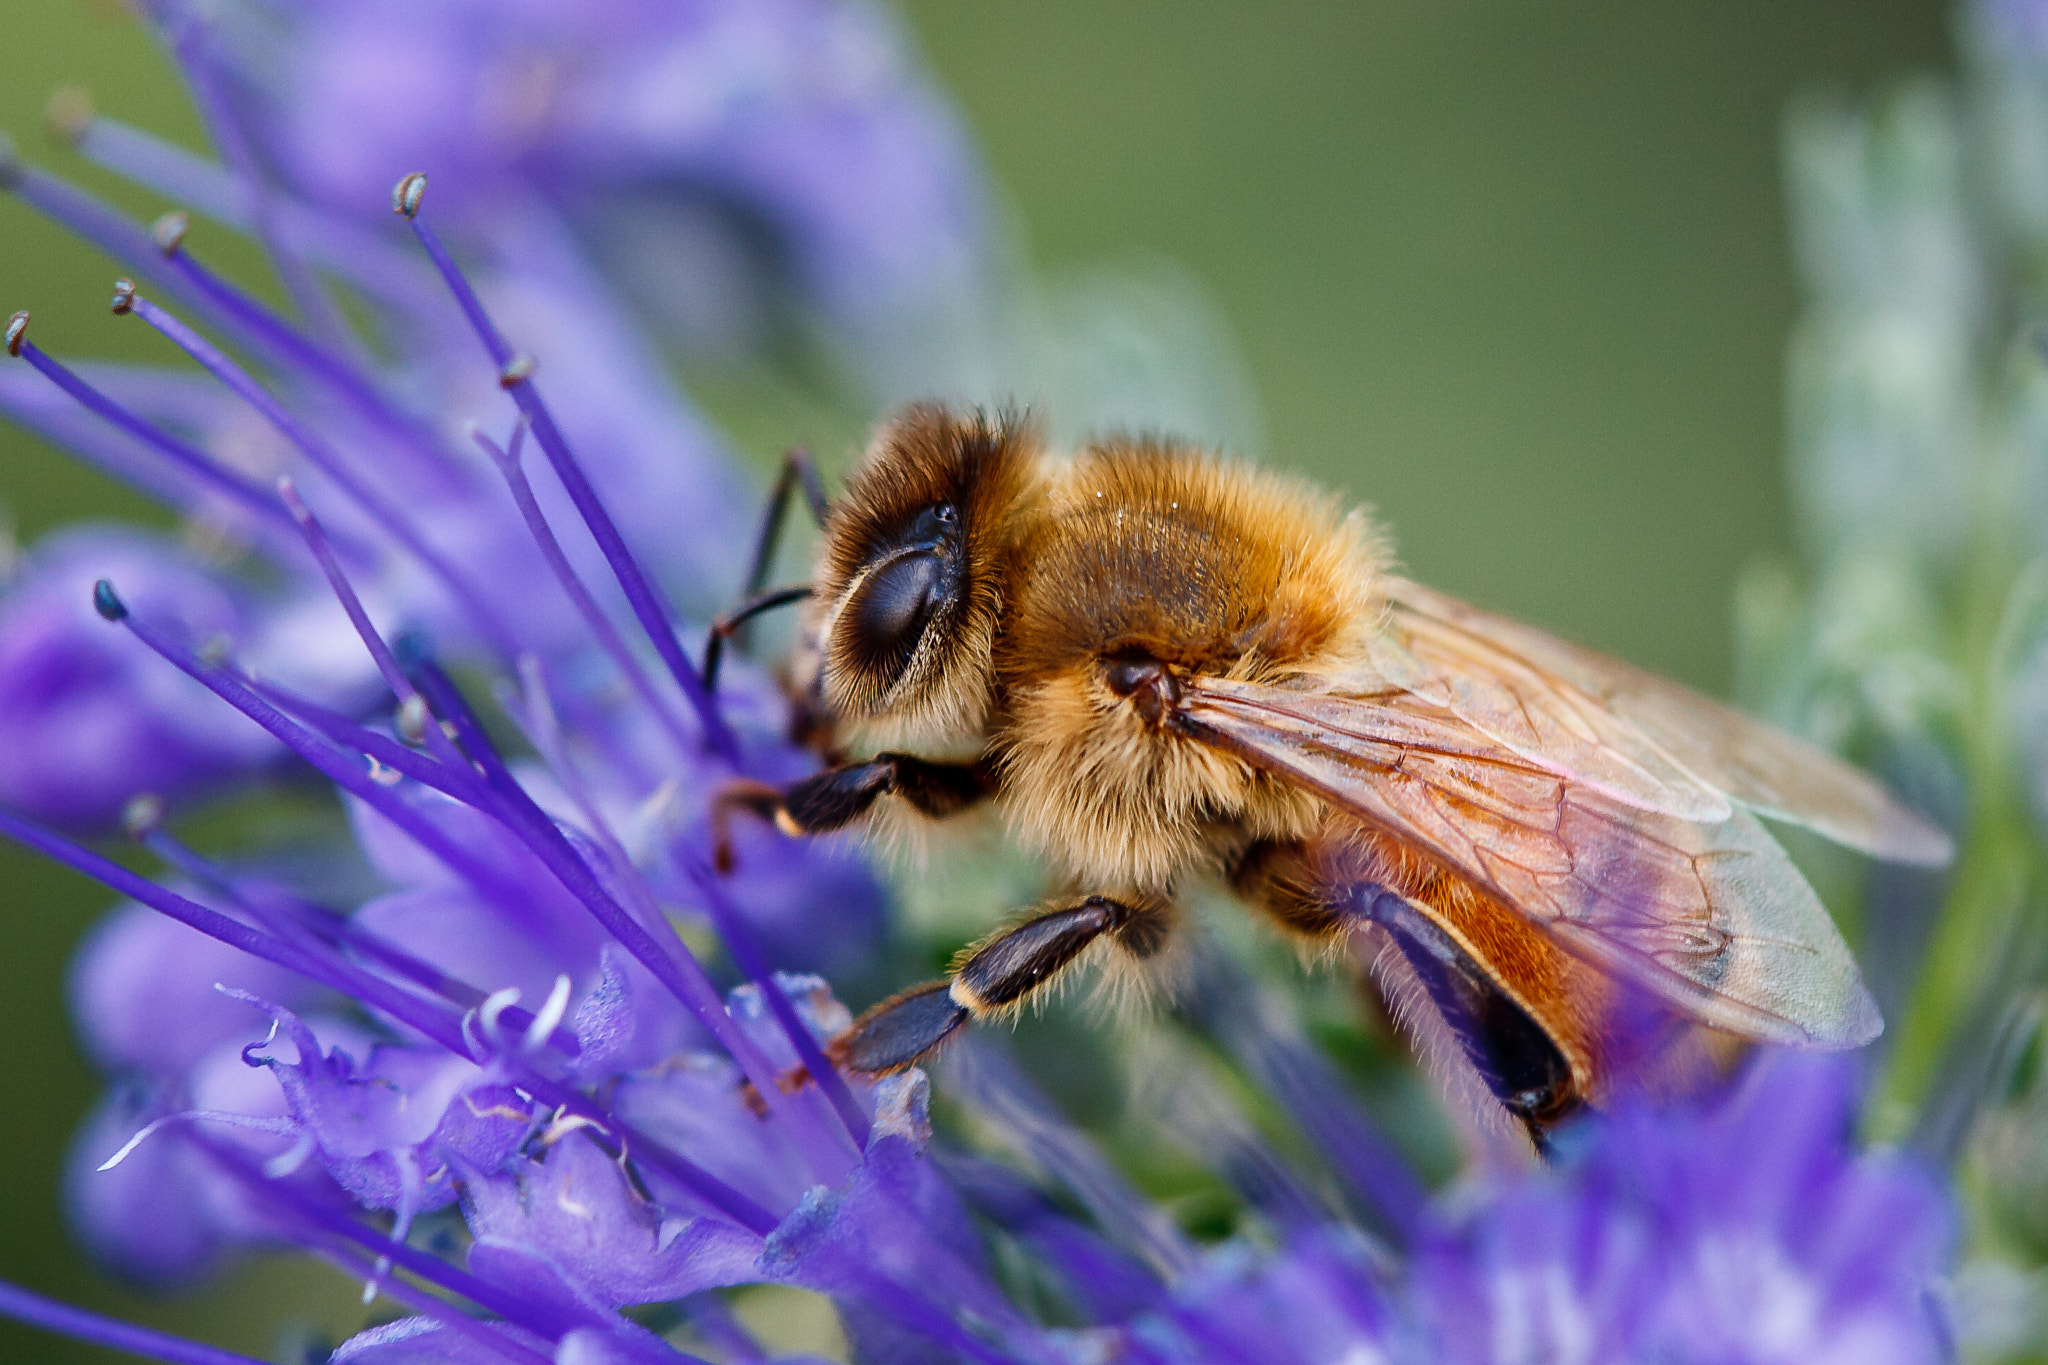 Photograph Bee-utiful by Jeremy Hall on 500px